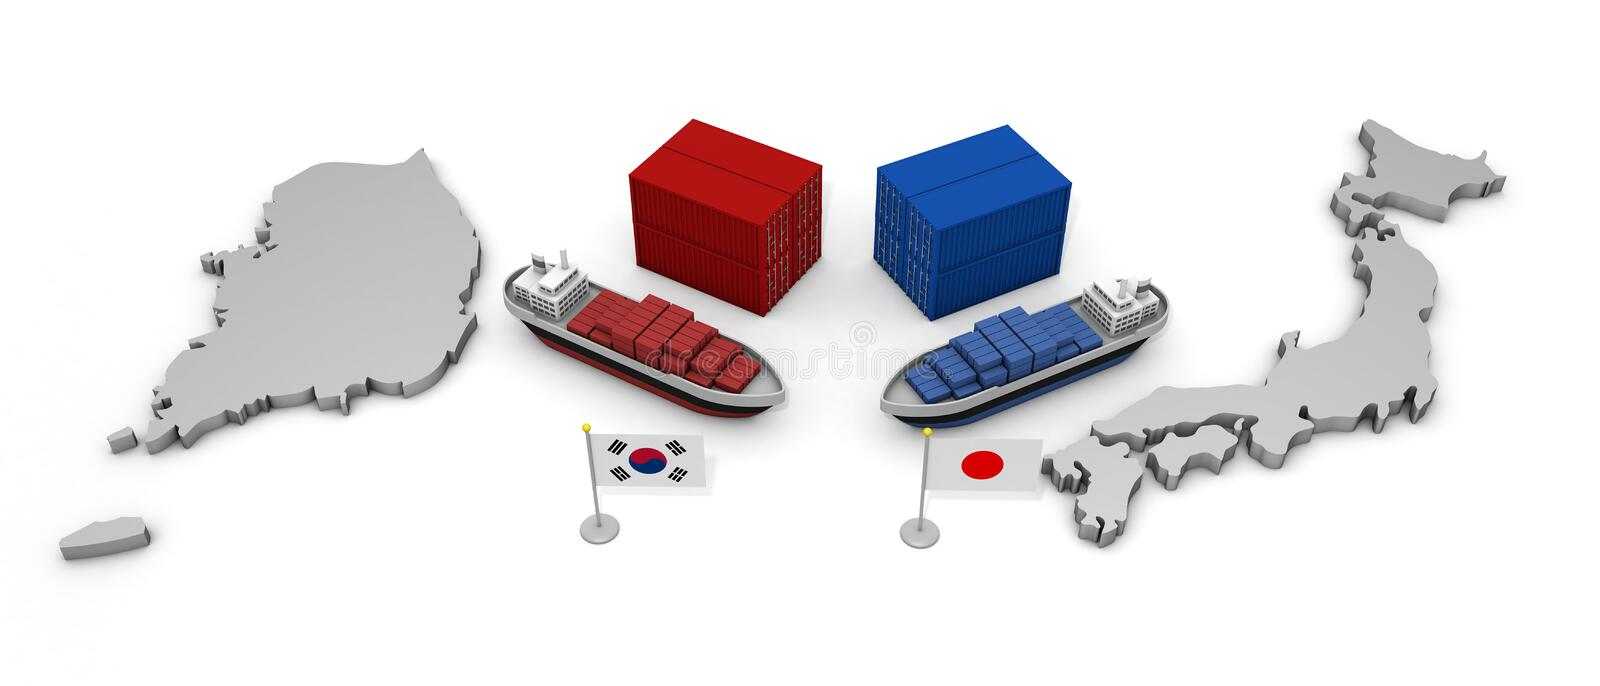 Japan and Korea Trade Problem 3D illustration. Japanese flag. Korean flag. Japan and Korea. Demand issue. Trade issues. Talk of resolution. Import and export stock illustration